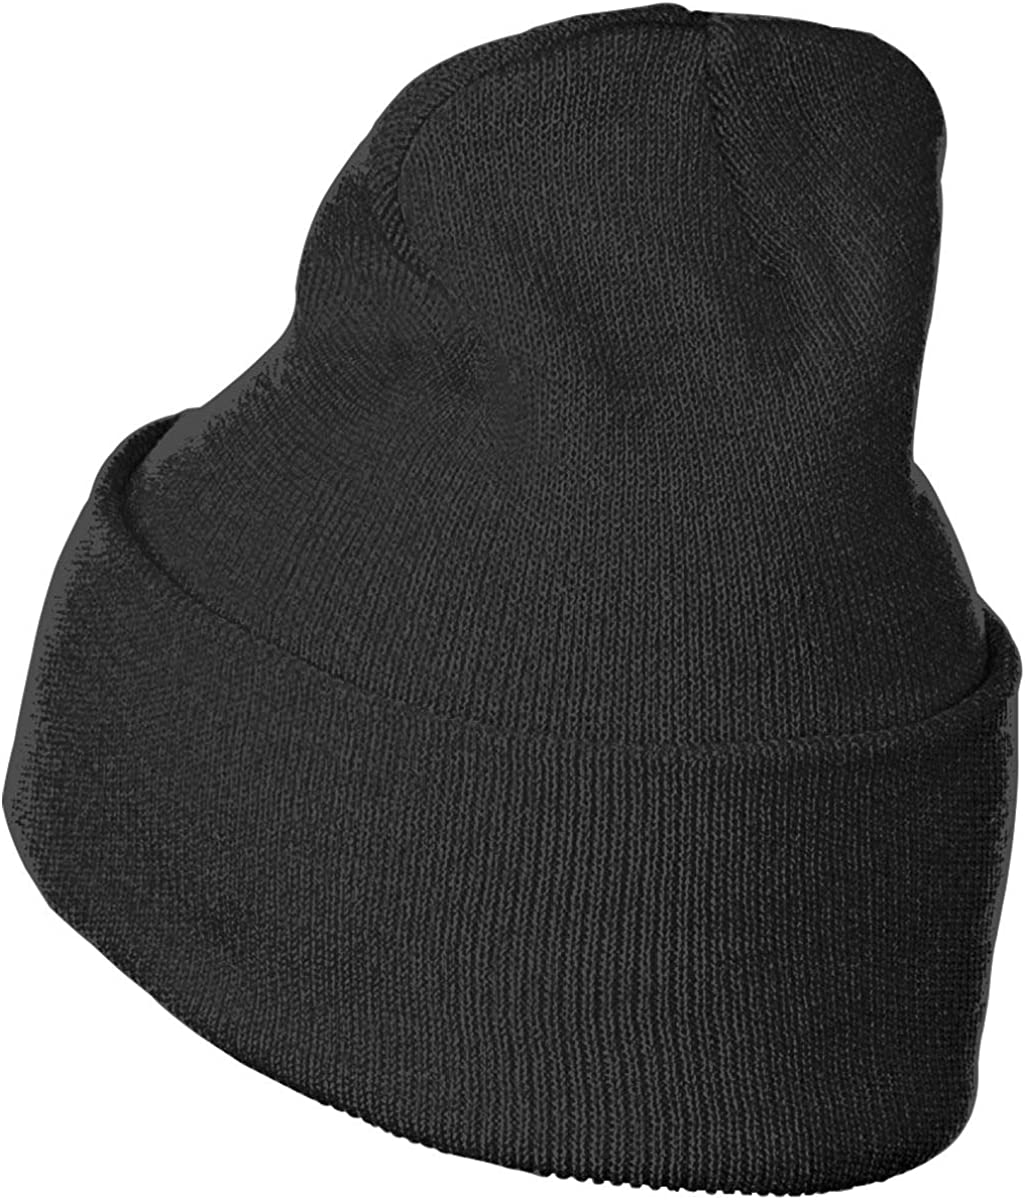 April Fools Day Hat for Men and Women Winter Warm Hats Knit Slouchy Thick Skull Cap